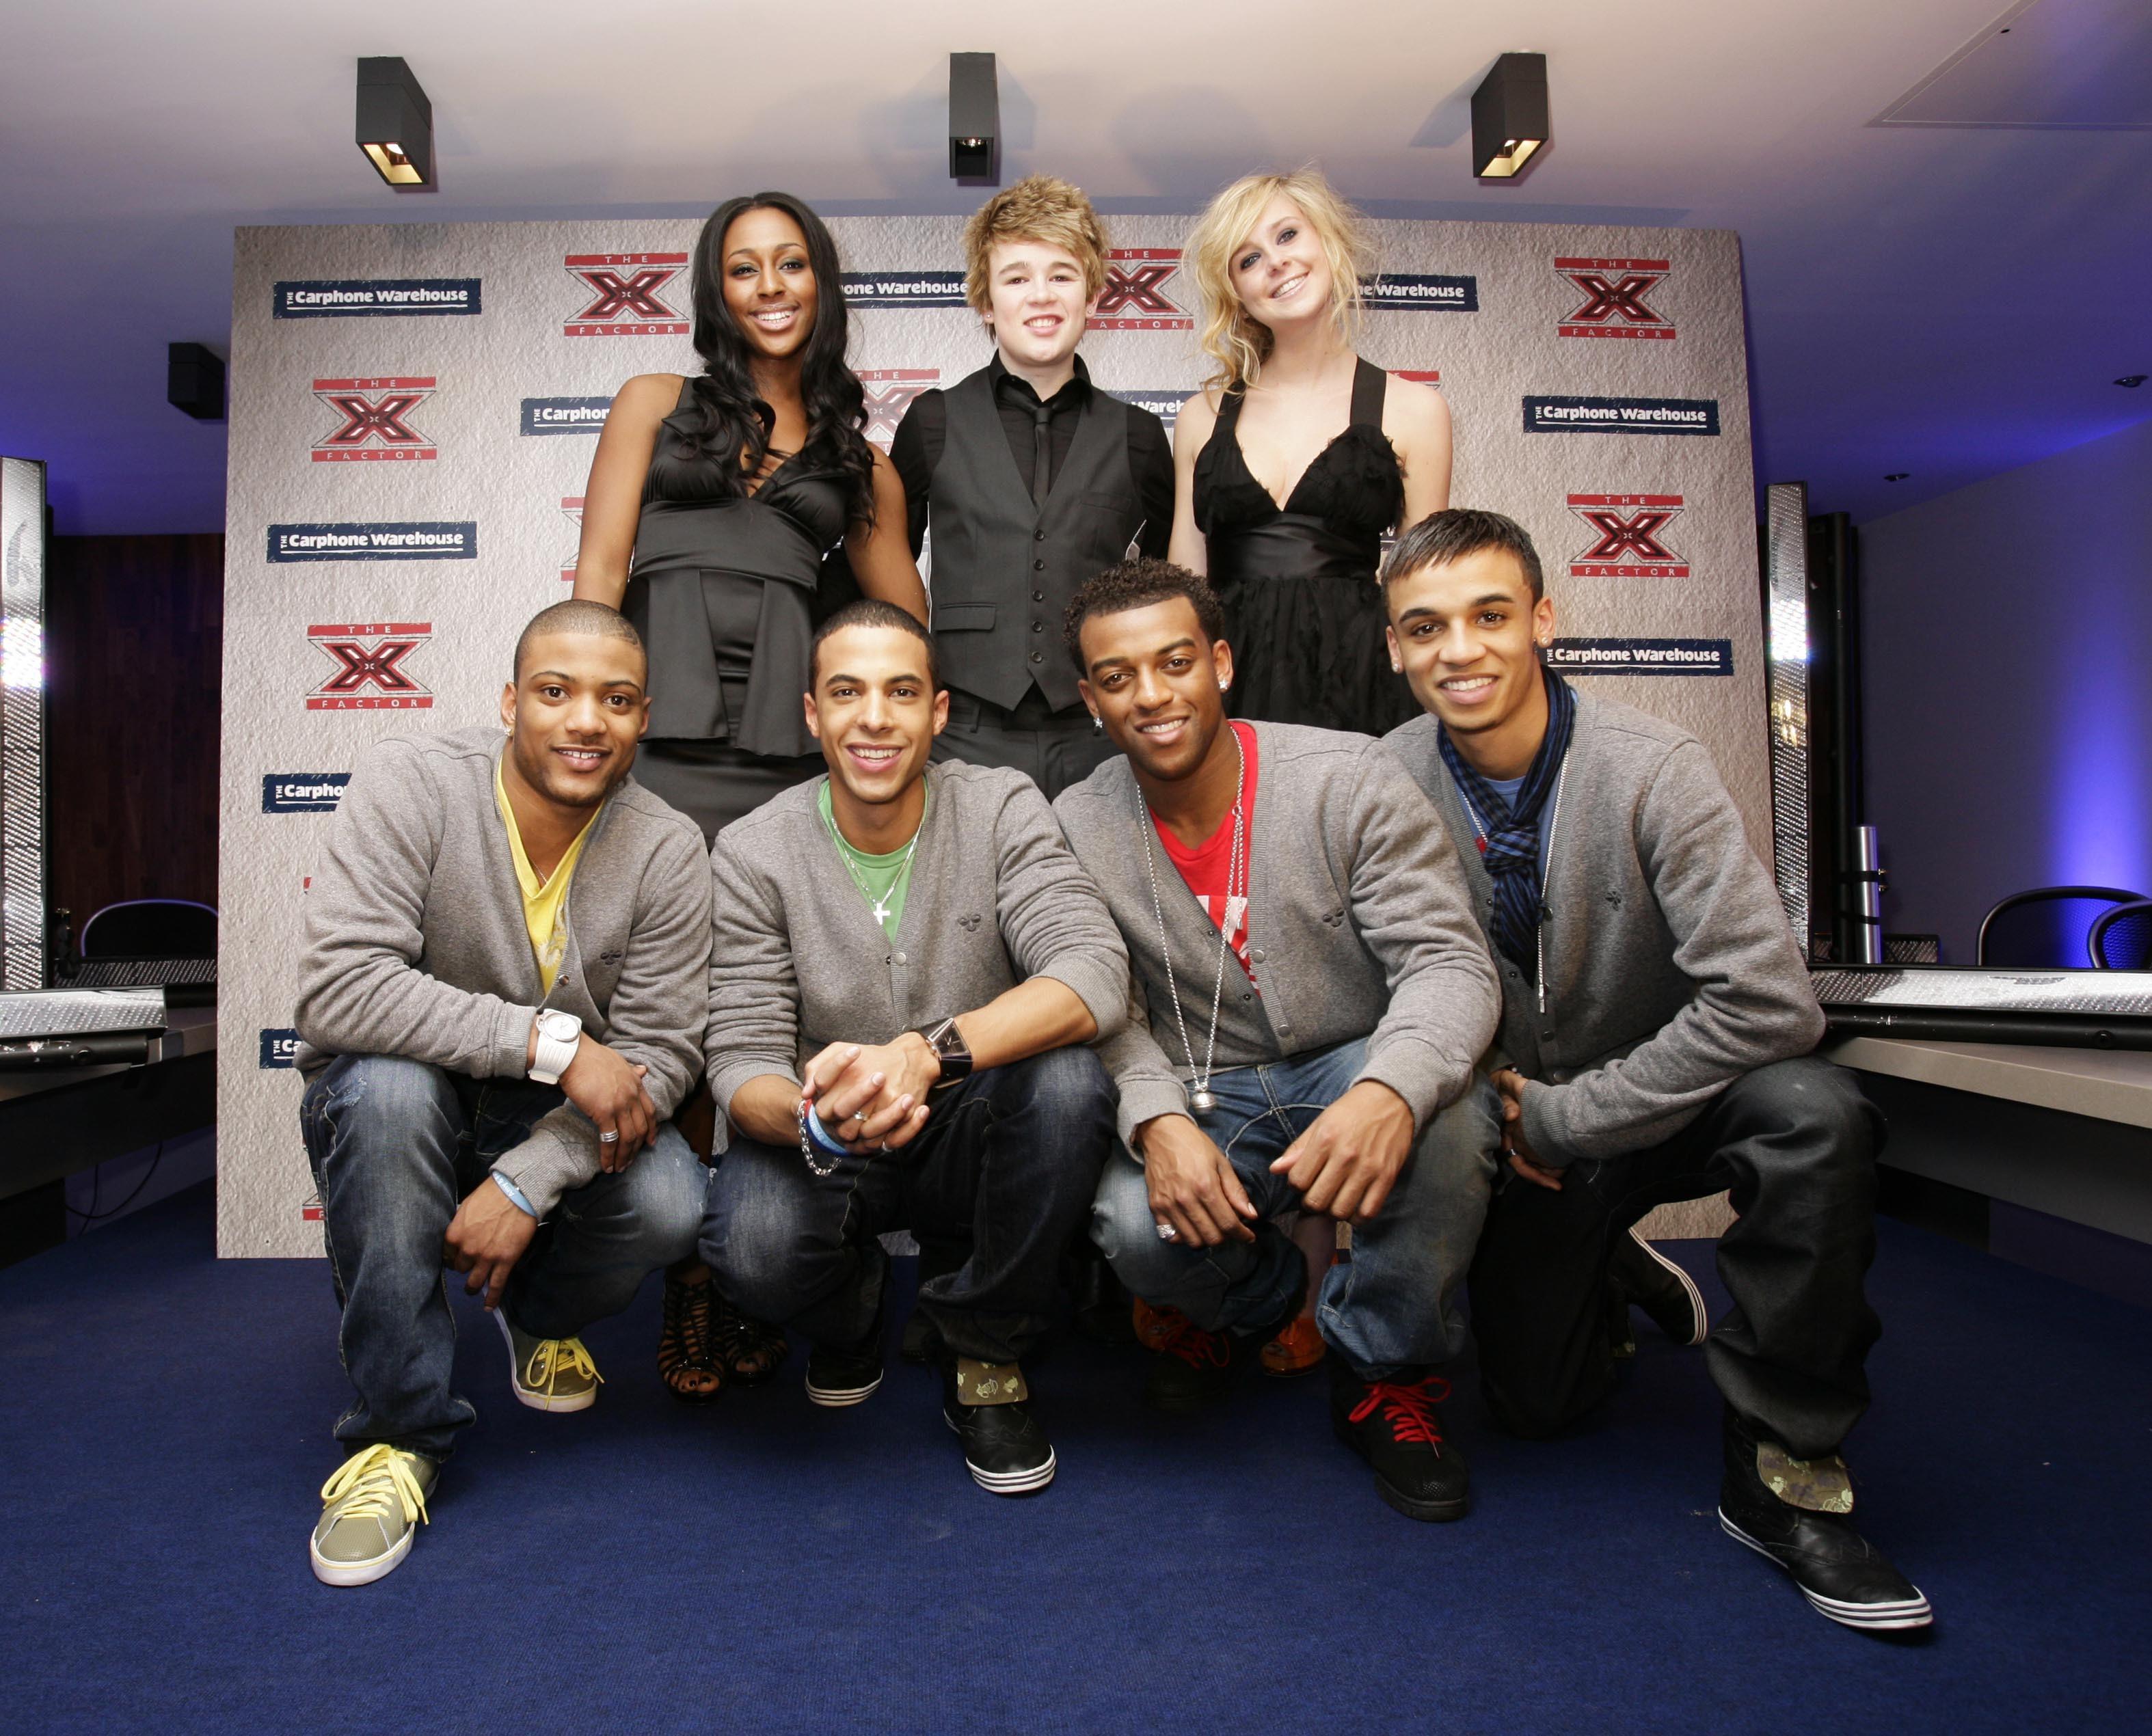 Alexandra Burke, Eoghan Quigg, Diana Vickers and boyband JLS (front) at an X Factor gig in 2008. (Yui Mok/PA)